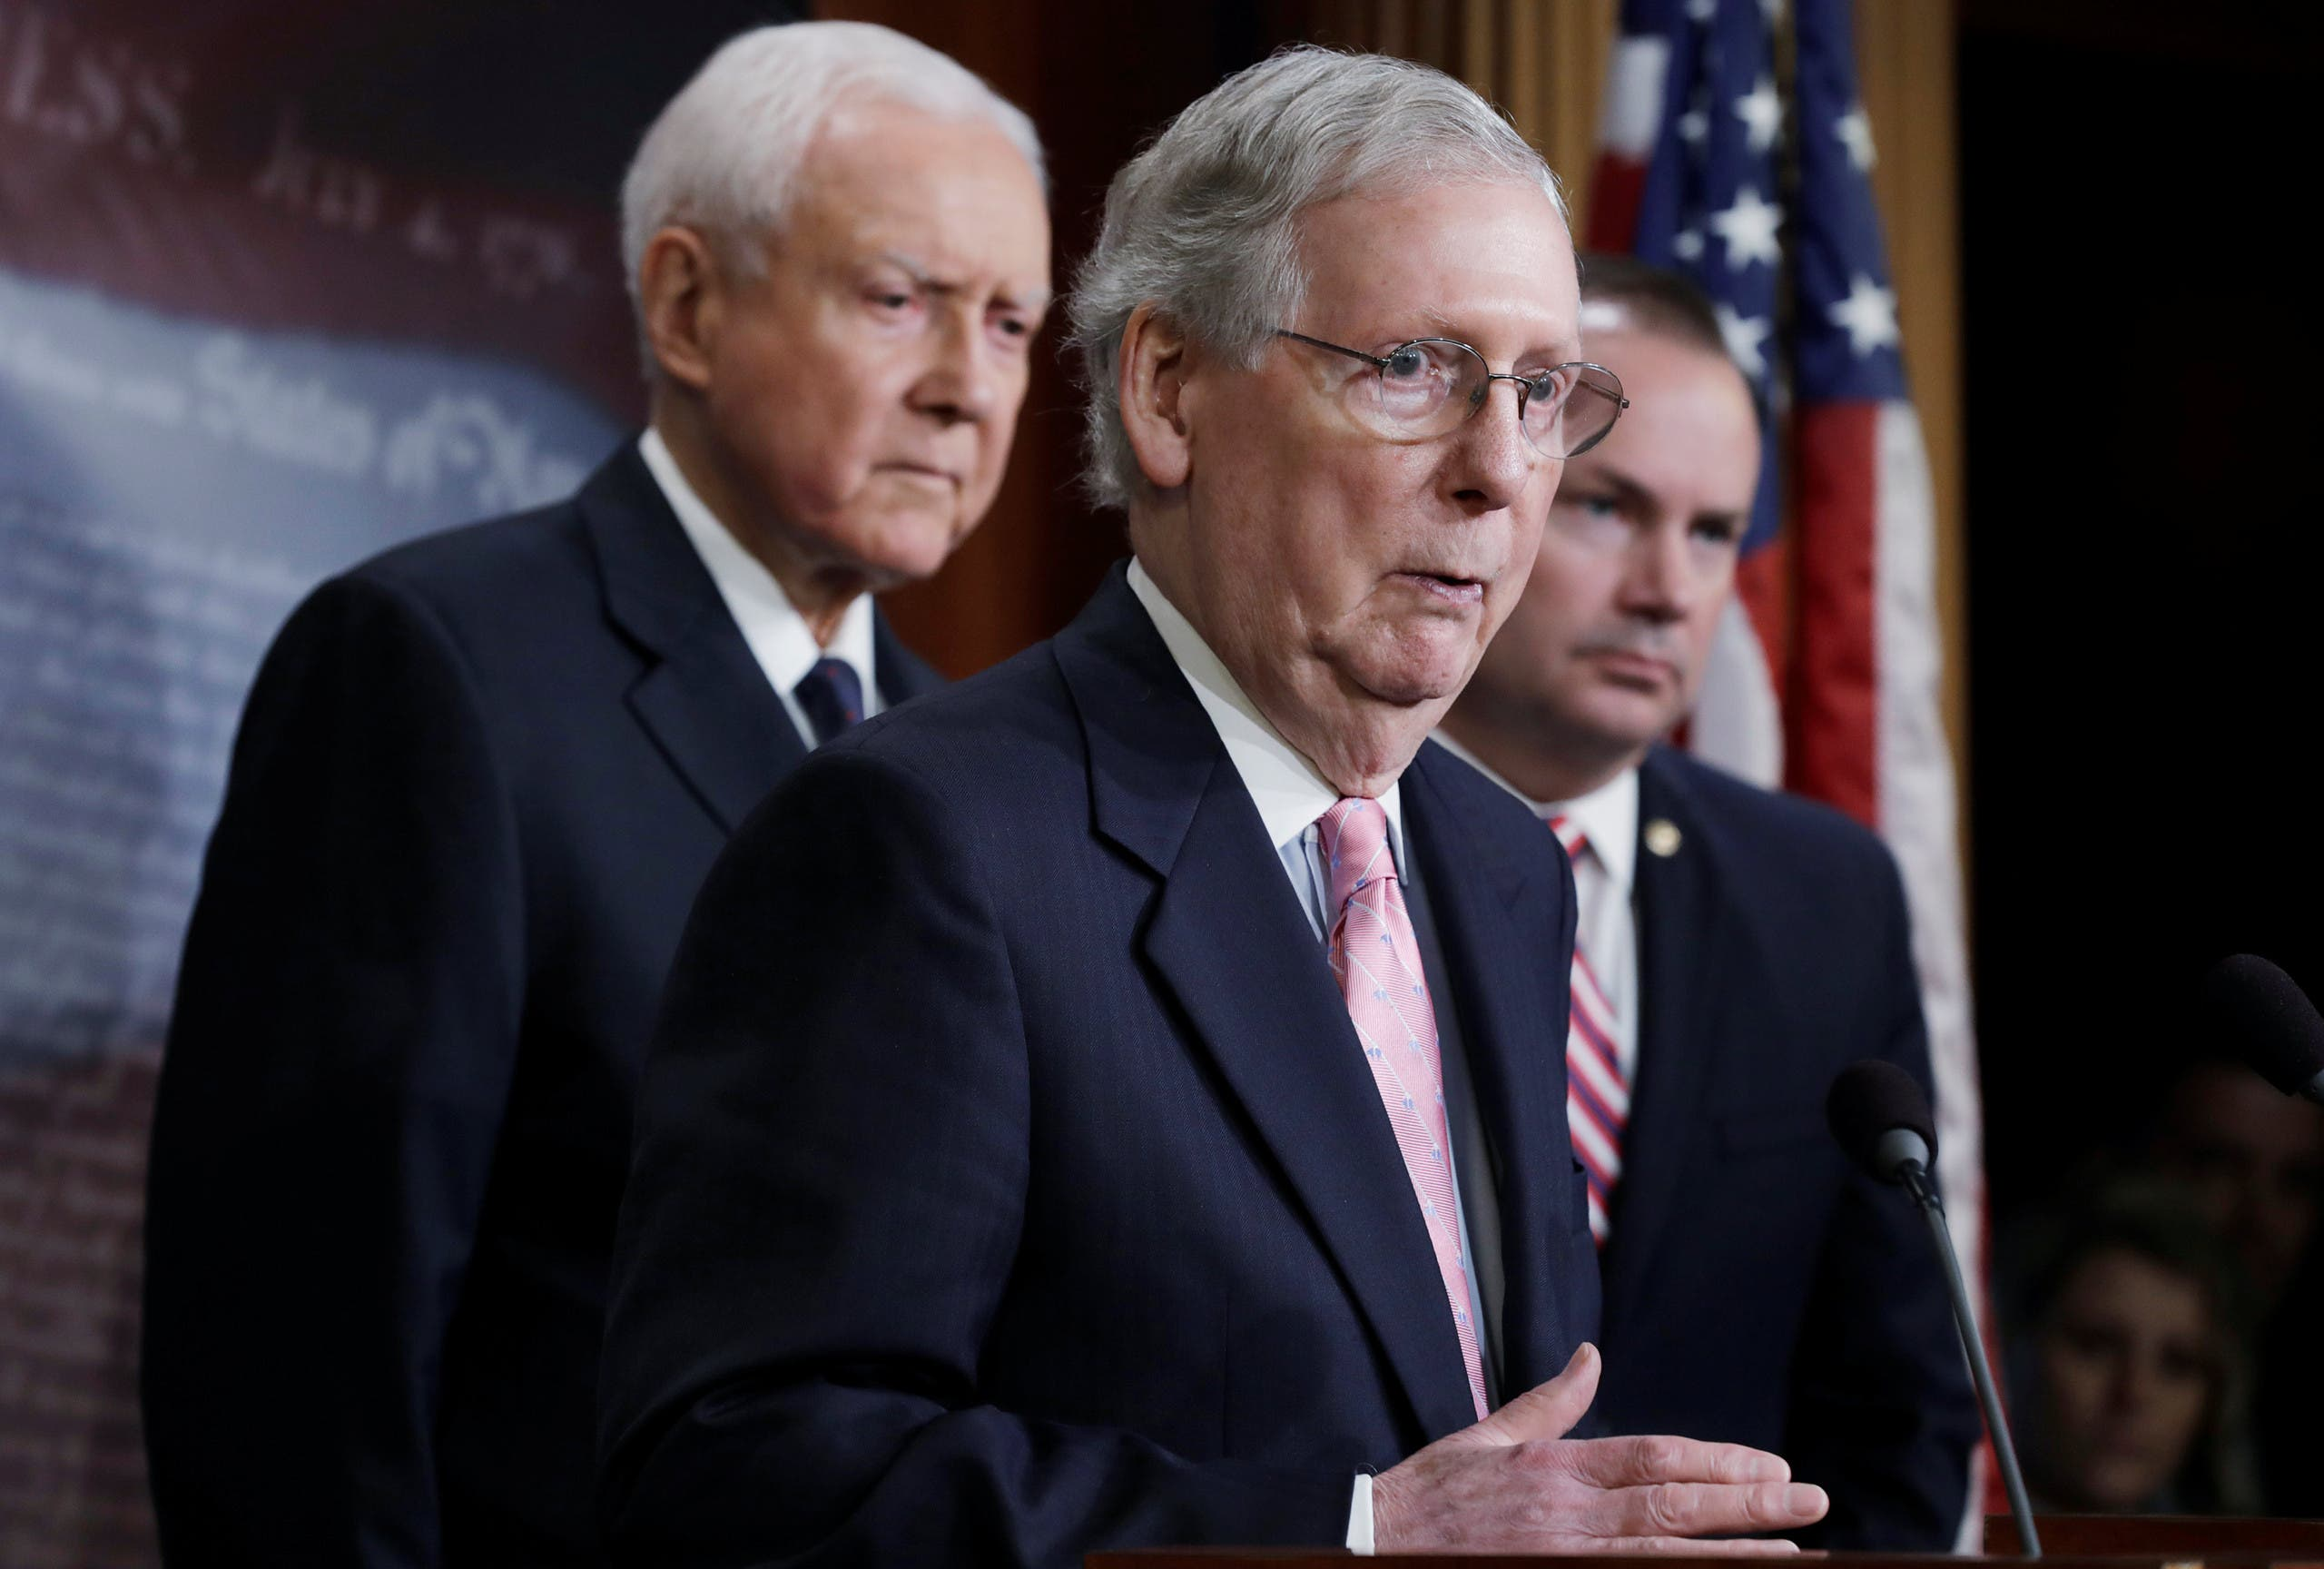 Senate Majority Leader Mitch McConnell holds a news conference with Senator Orrin Hatch (L) and Senator Mike Lee (R) to discuss the FBI background investigation into the assault allegations against Kavanaugh in Washington on October 4, 2018. (Reuters)